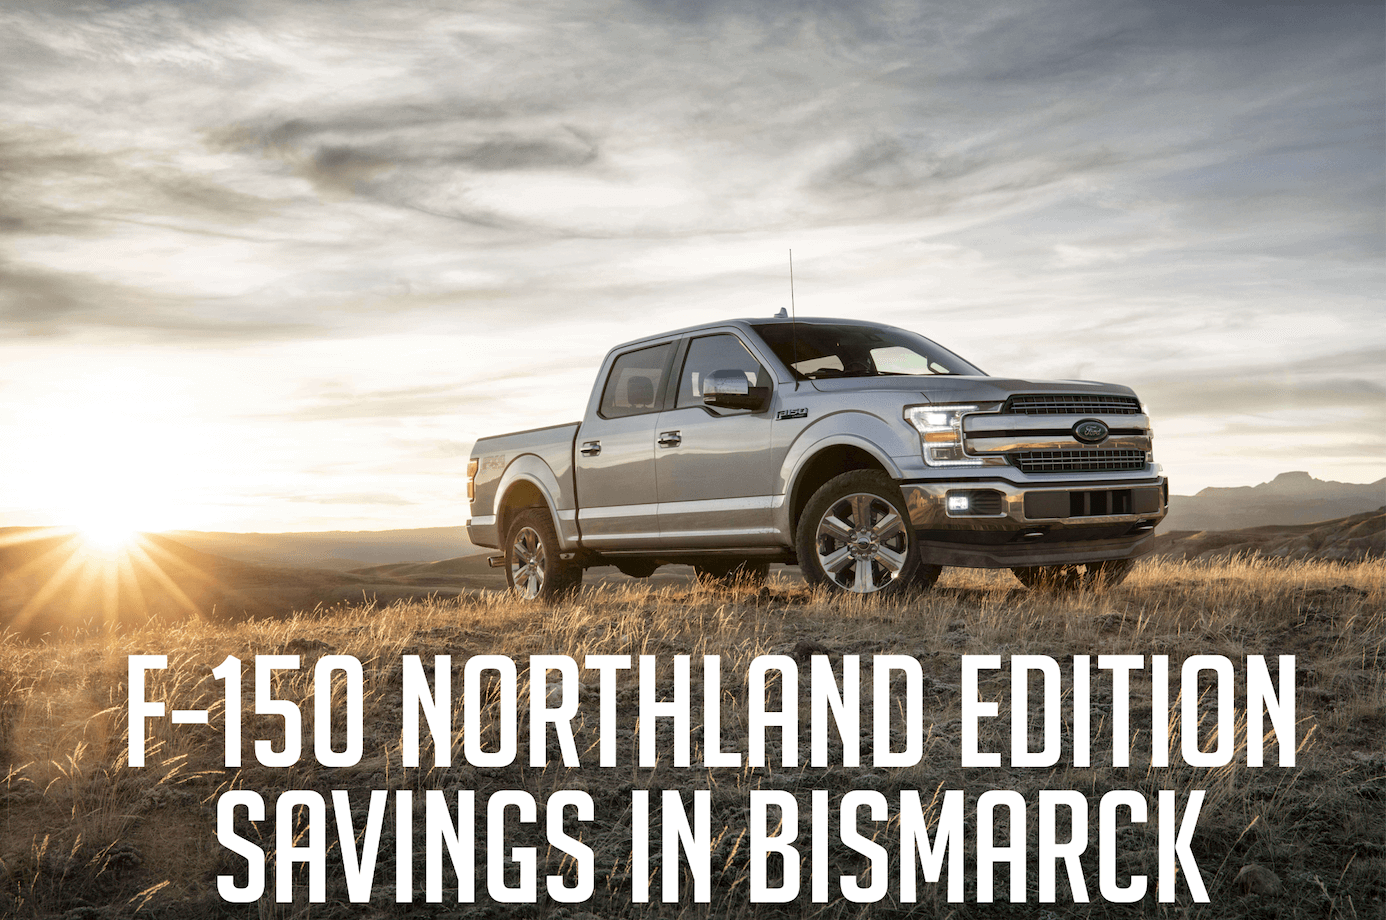 F-150 Northland Savings in Bismarck